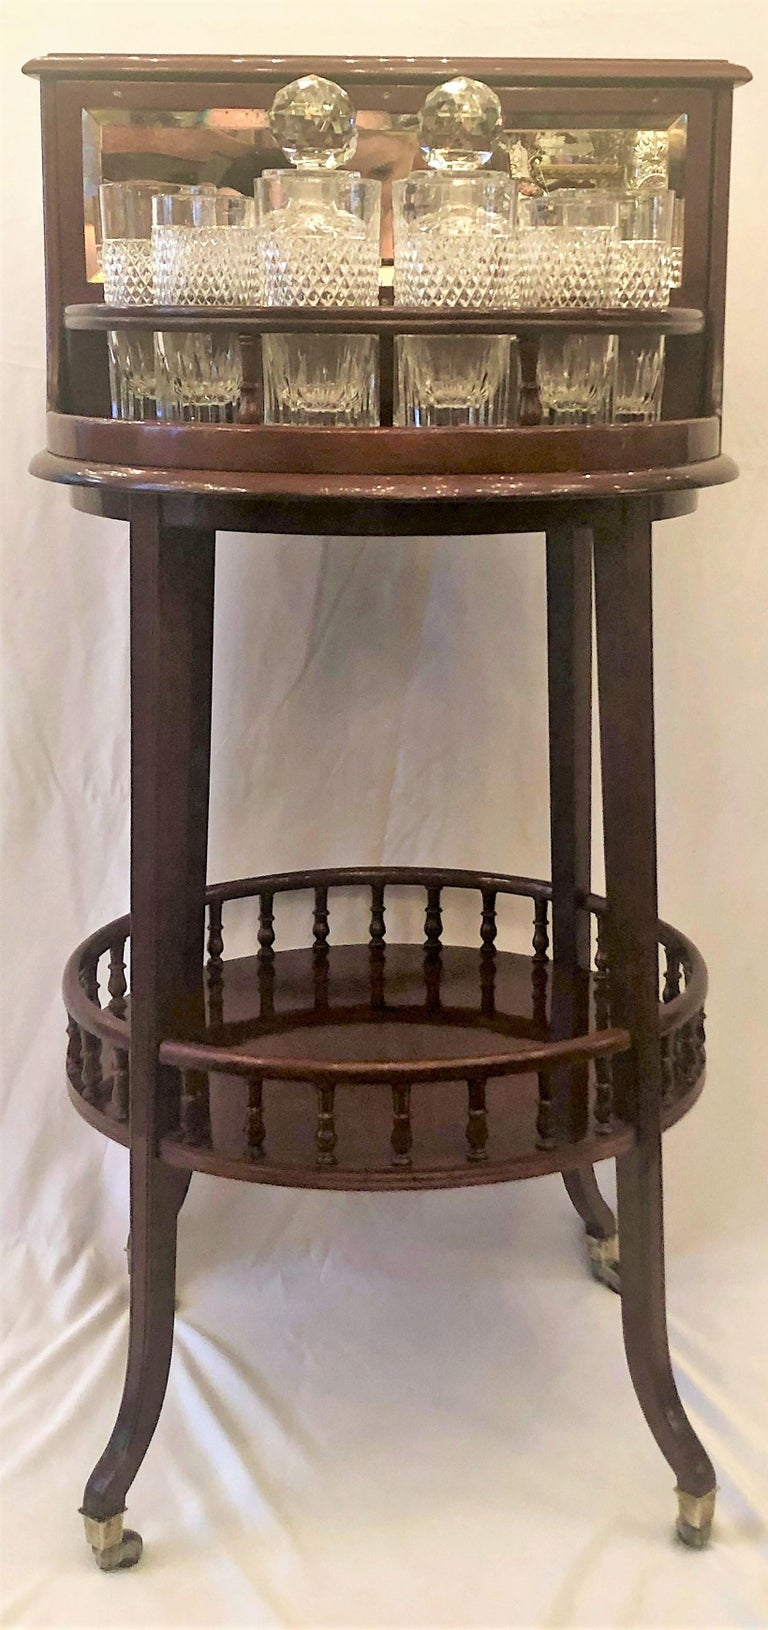 Antique English mahogany revolving hidden bar with cut crystal barware, made by